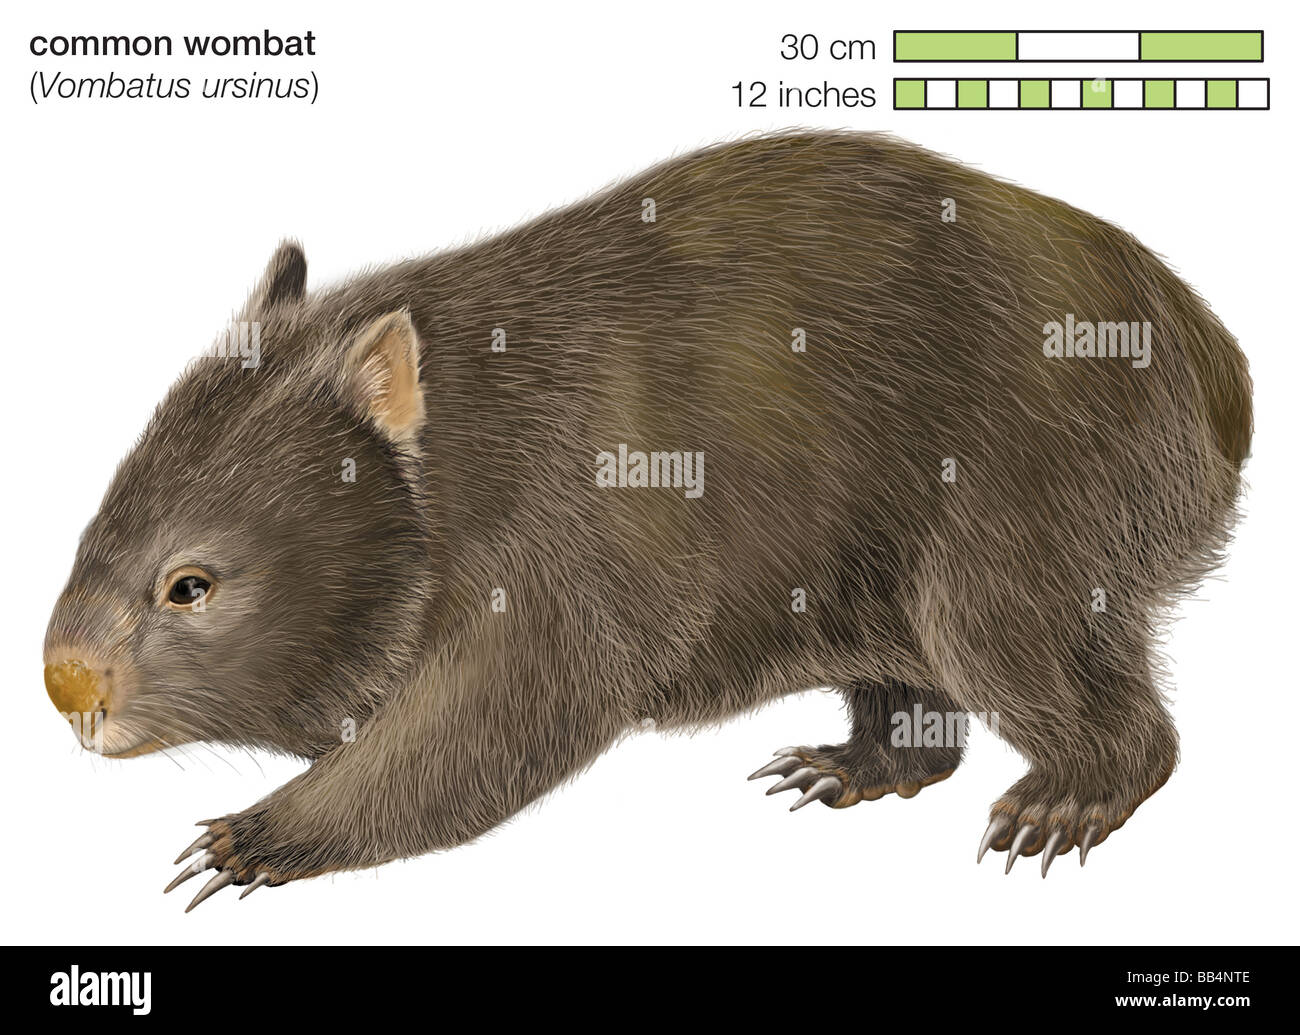 Wombat commun (Vombatus ursinus) Photo Stock